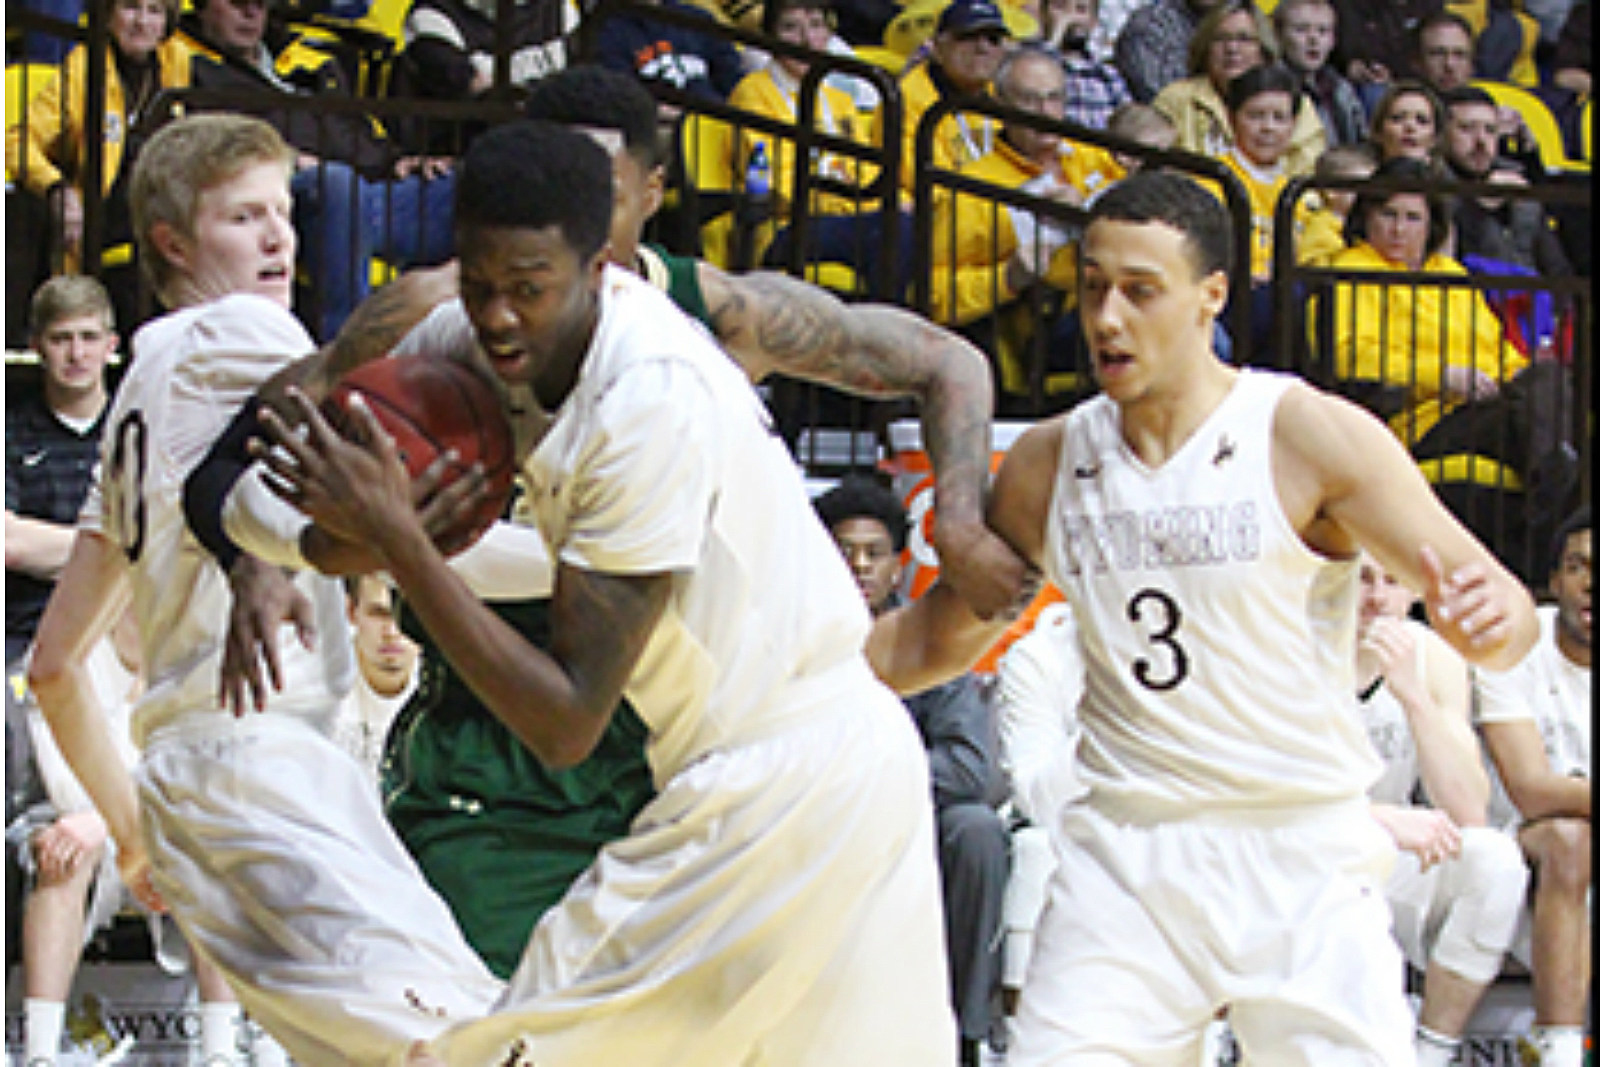 Cowboy players tussle for rebound vs CSU